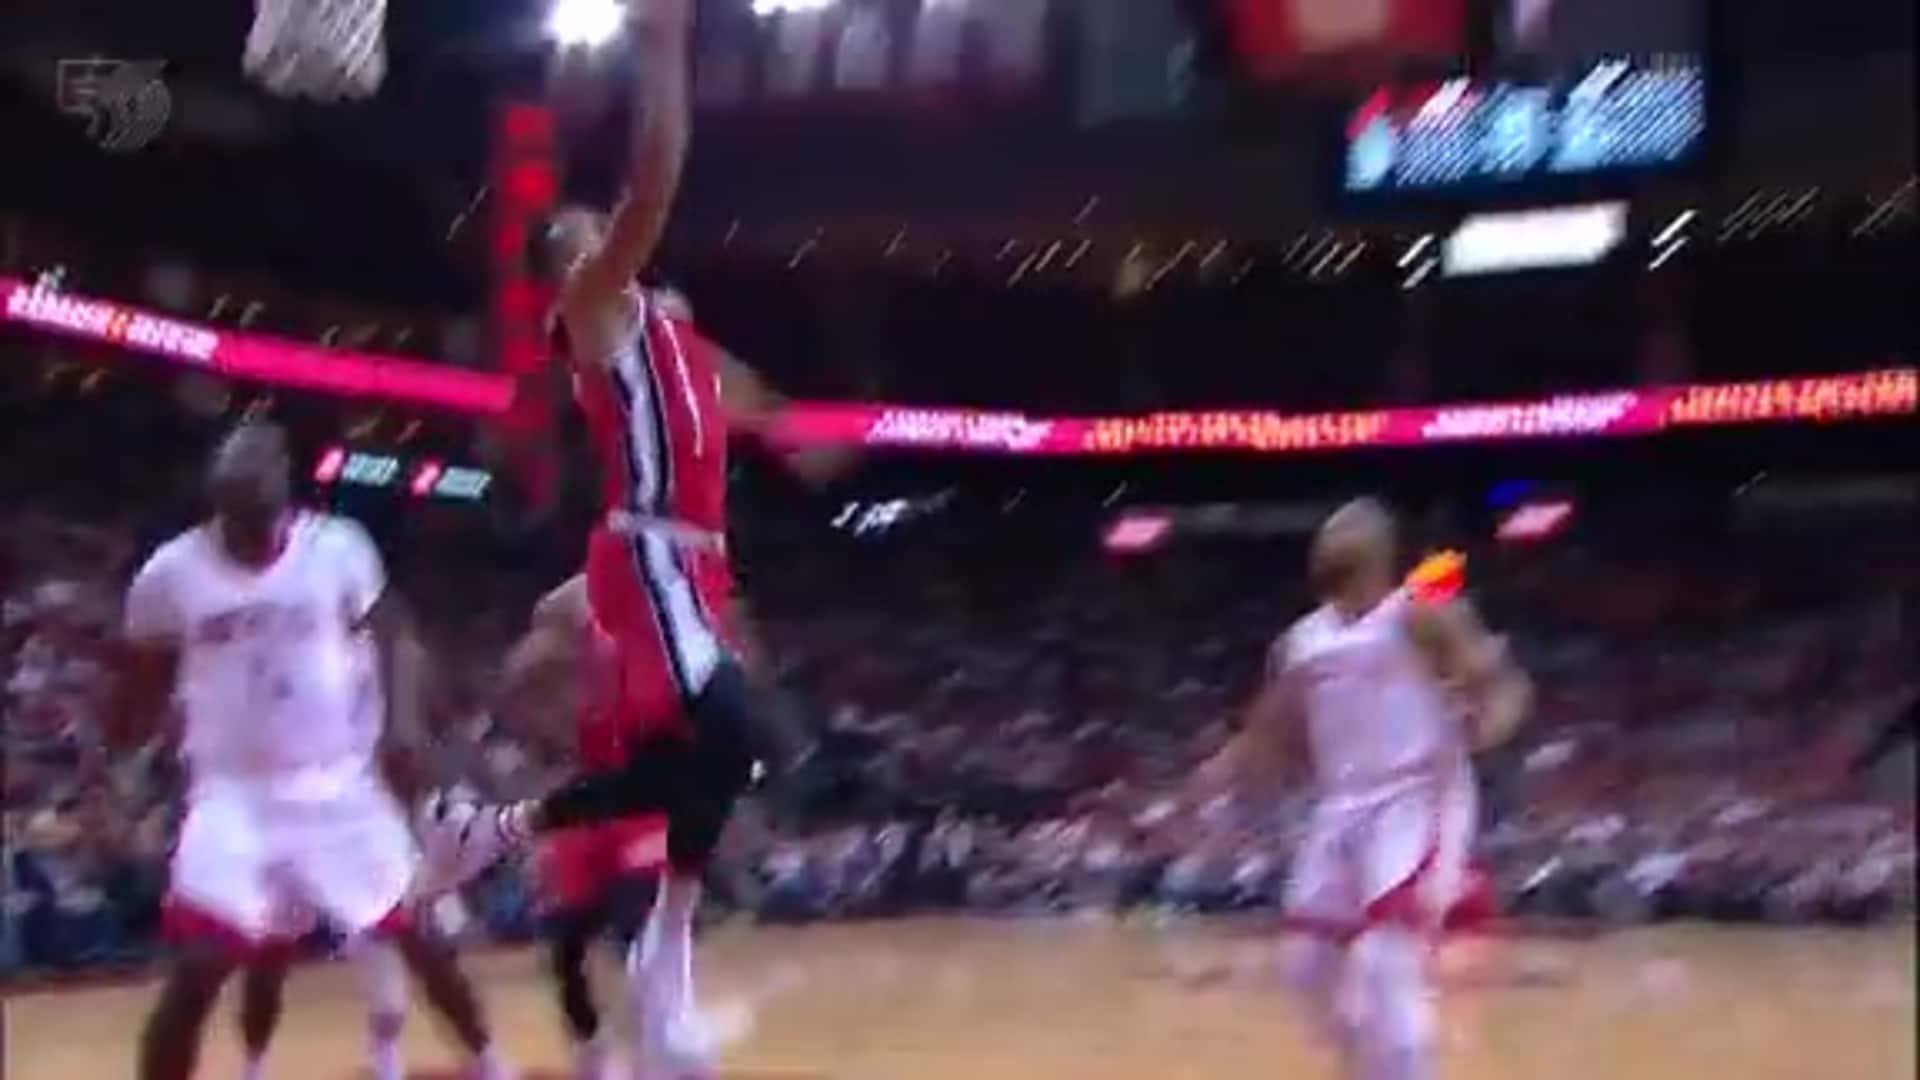 CJ McCollum finds his way to the rim and finishes on the reverse